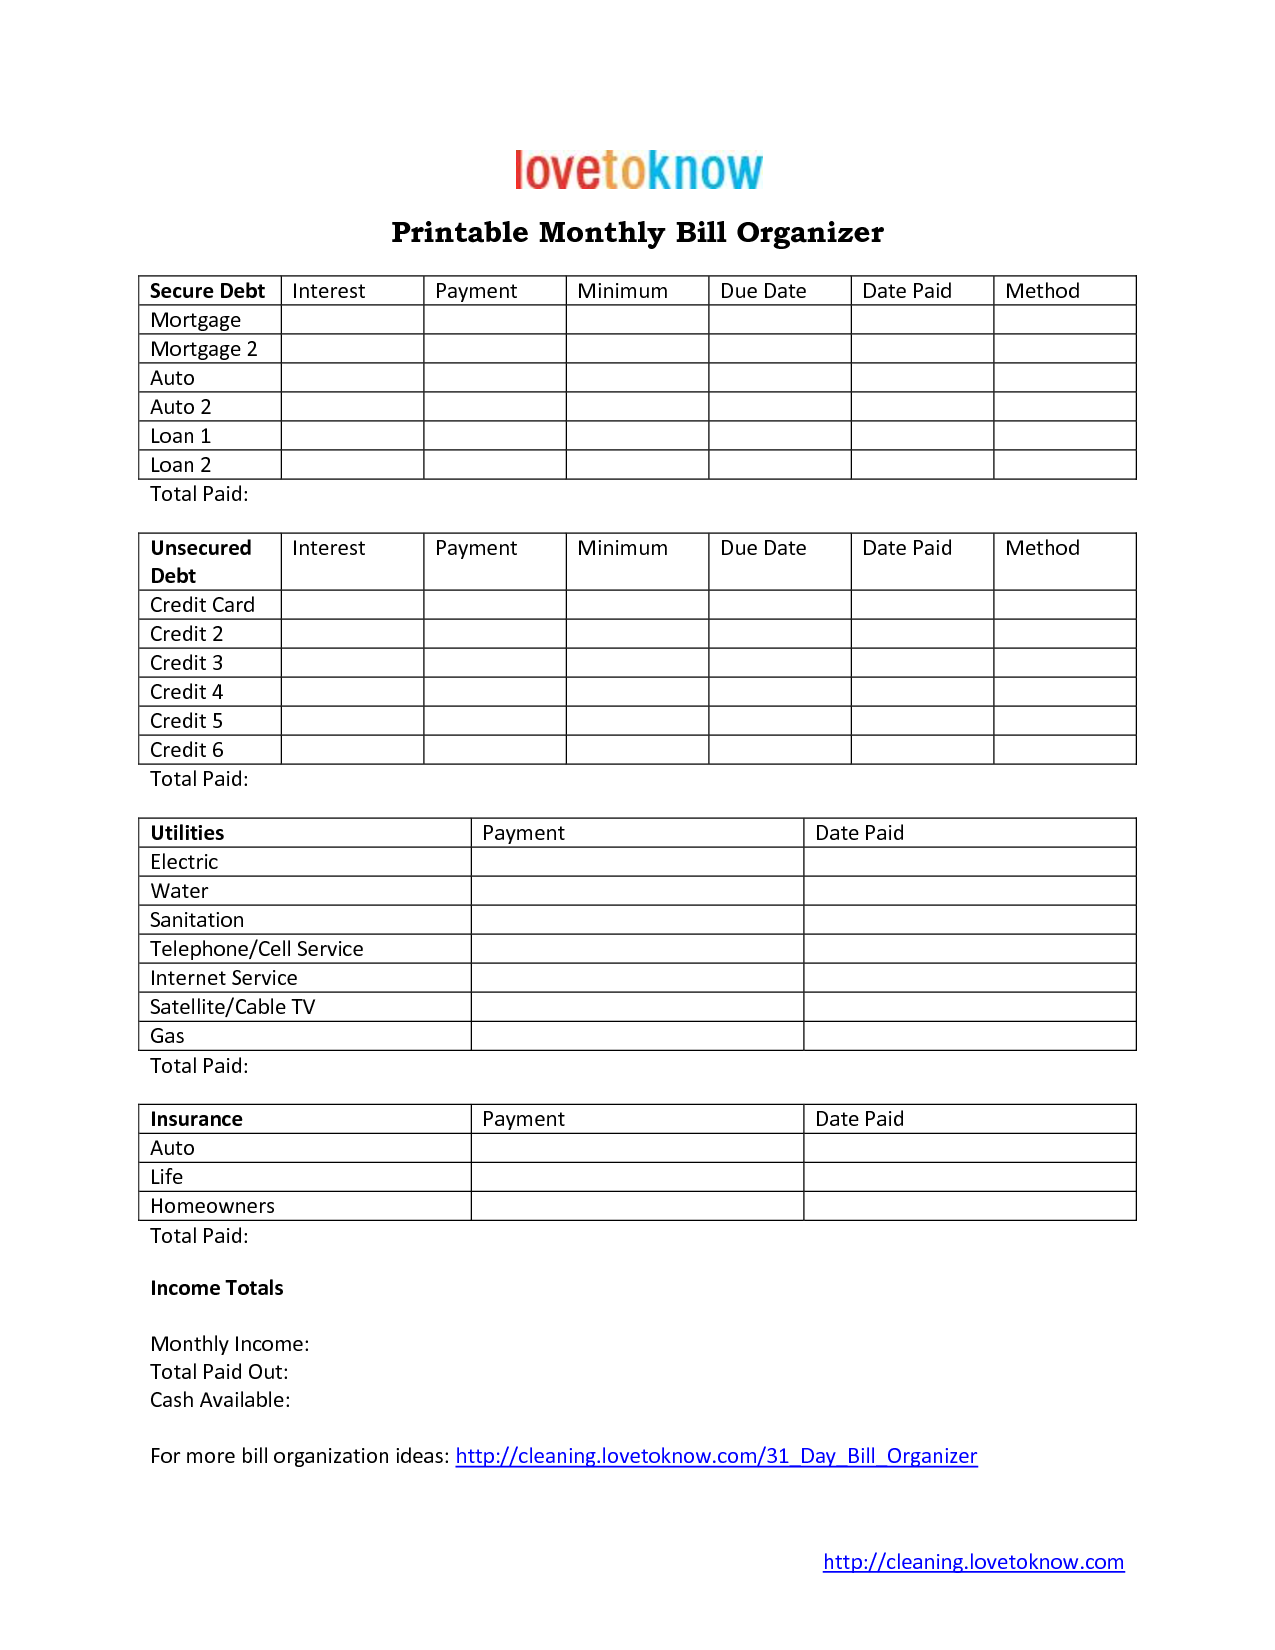 5 Images of Printable Monthly Bill Organizer Spreadsheet